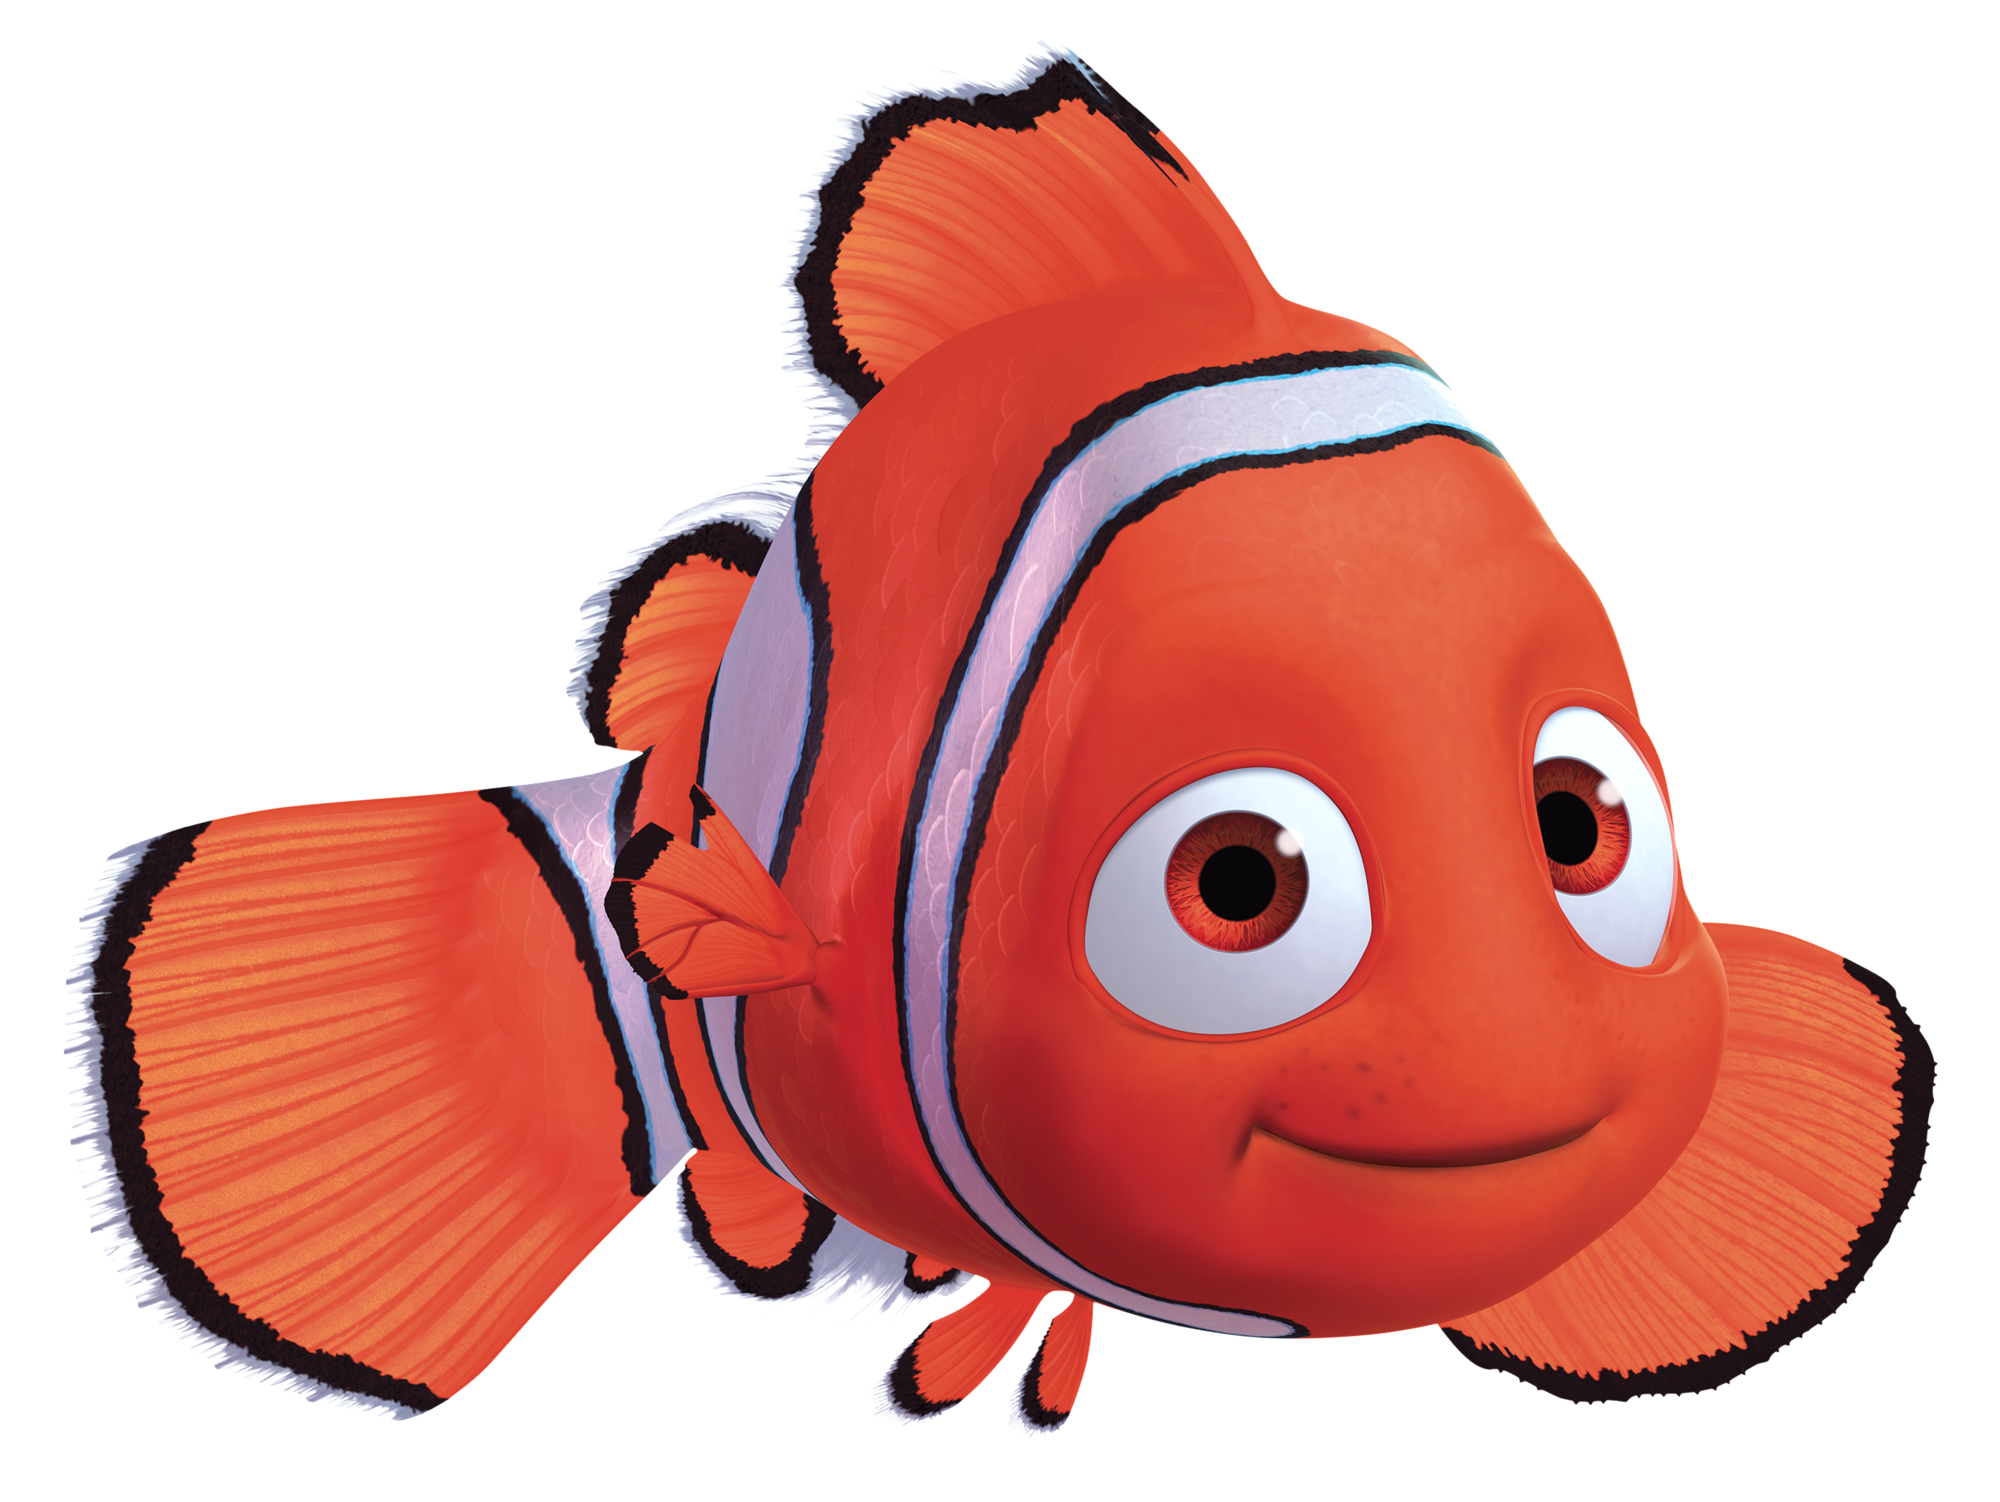 Clipart phone energetic. Nemo pinterest finding and